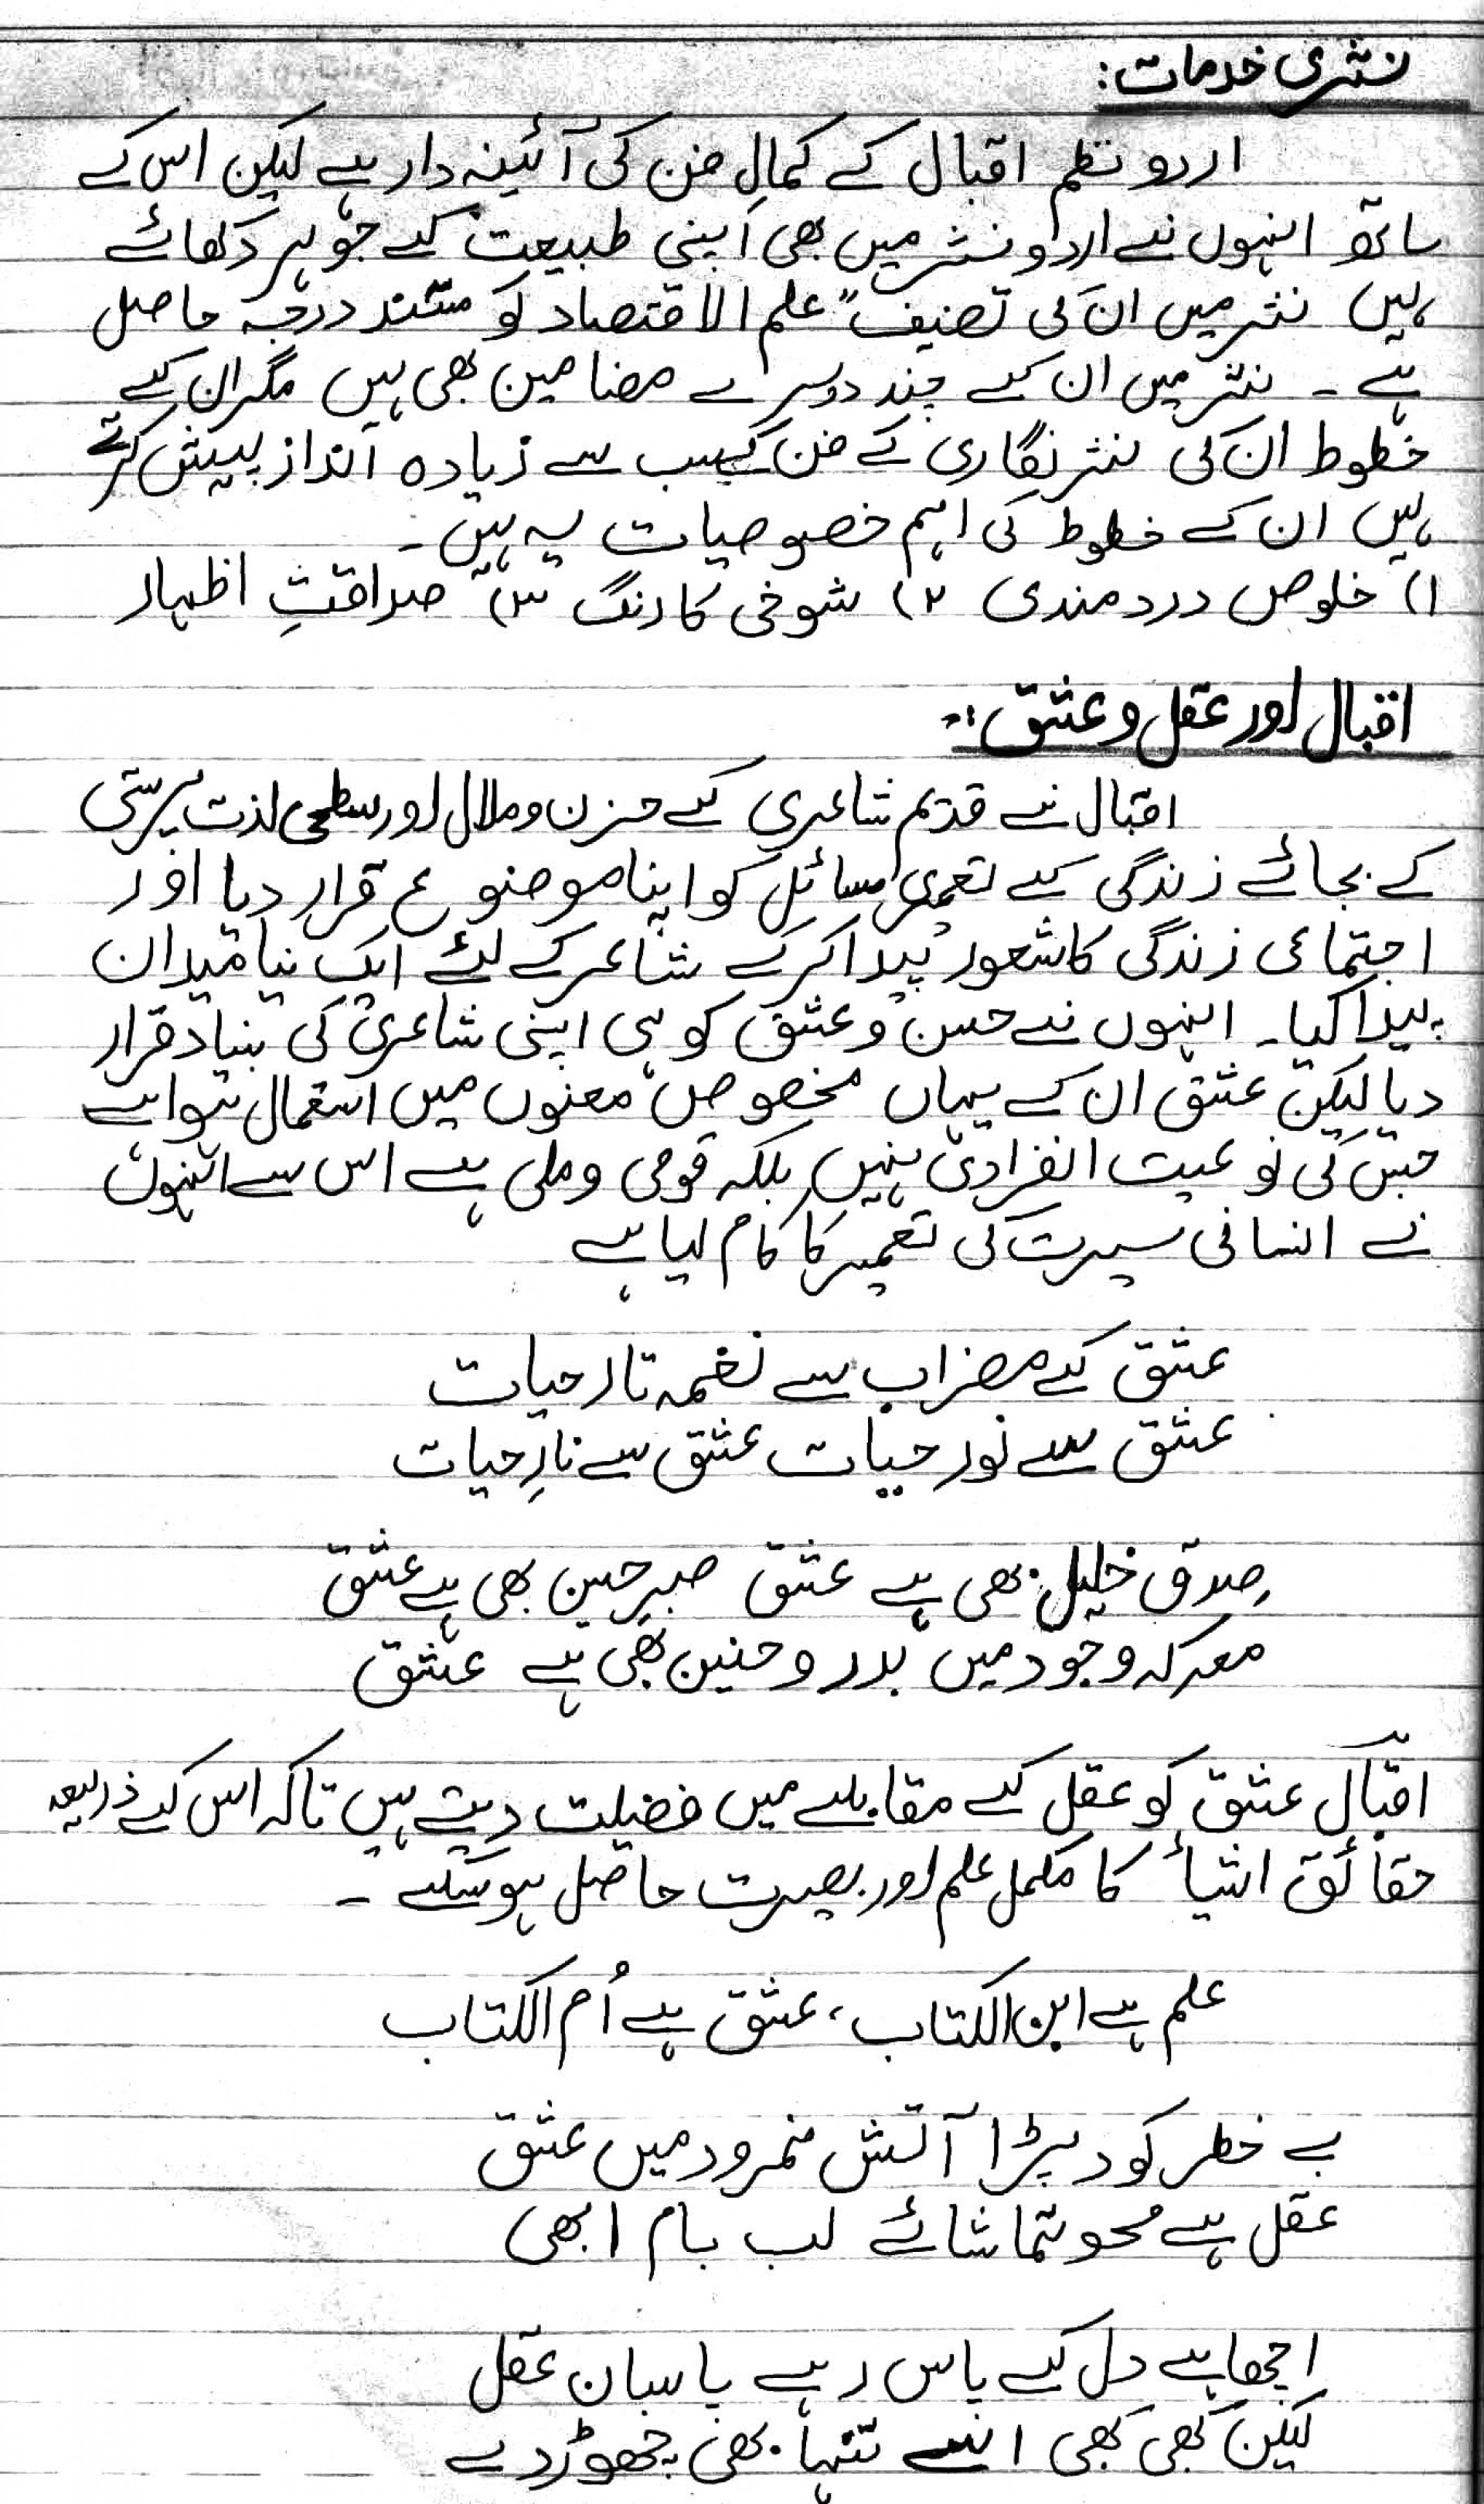 005 Urdu Essay Allama Iqbal Jpg Dreaded On In For Class 10 With Poetry Ka Shaheen Headings And 1920